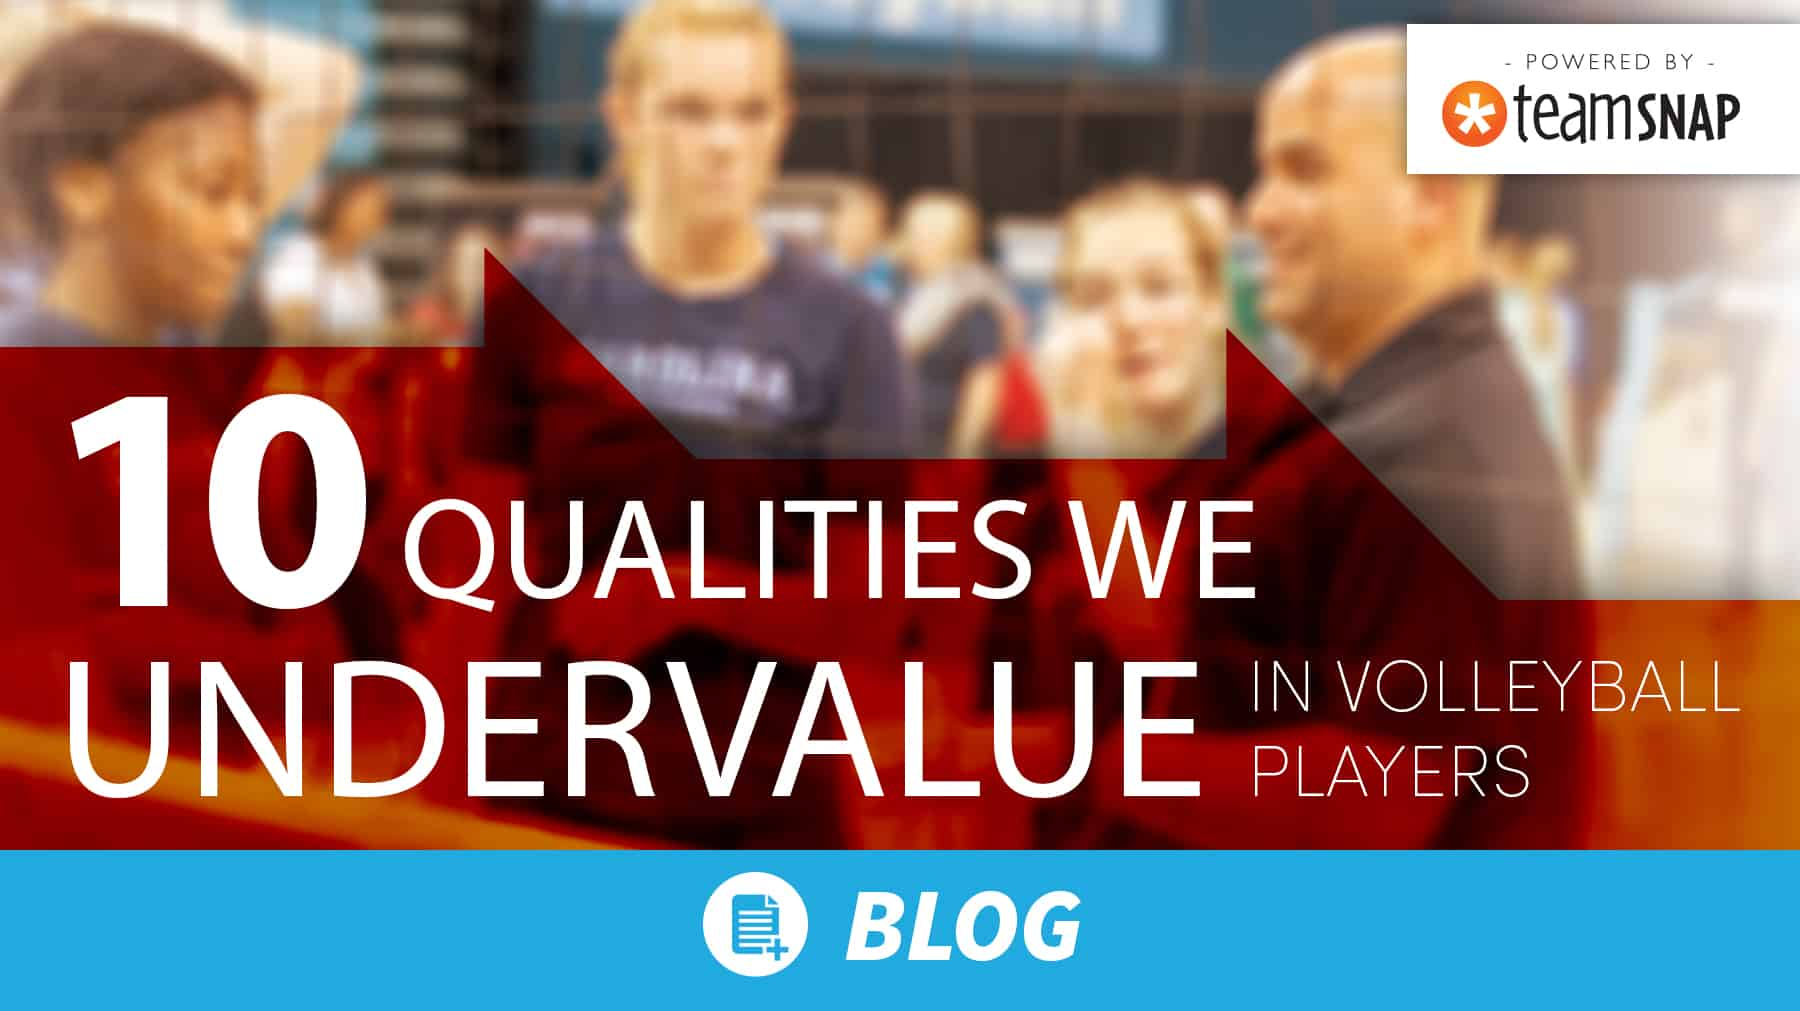 10 qualities we undervalue in volleyball players